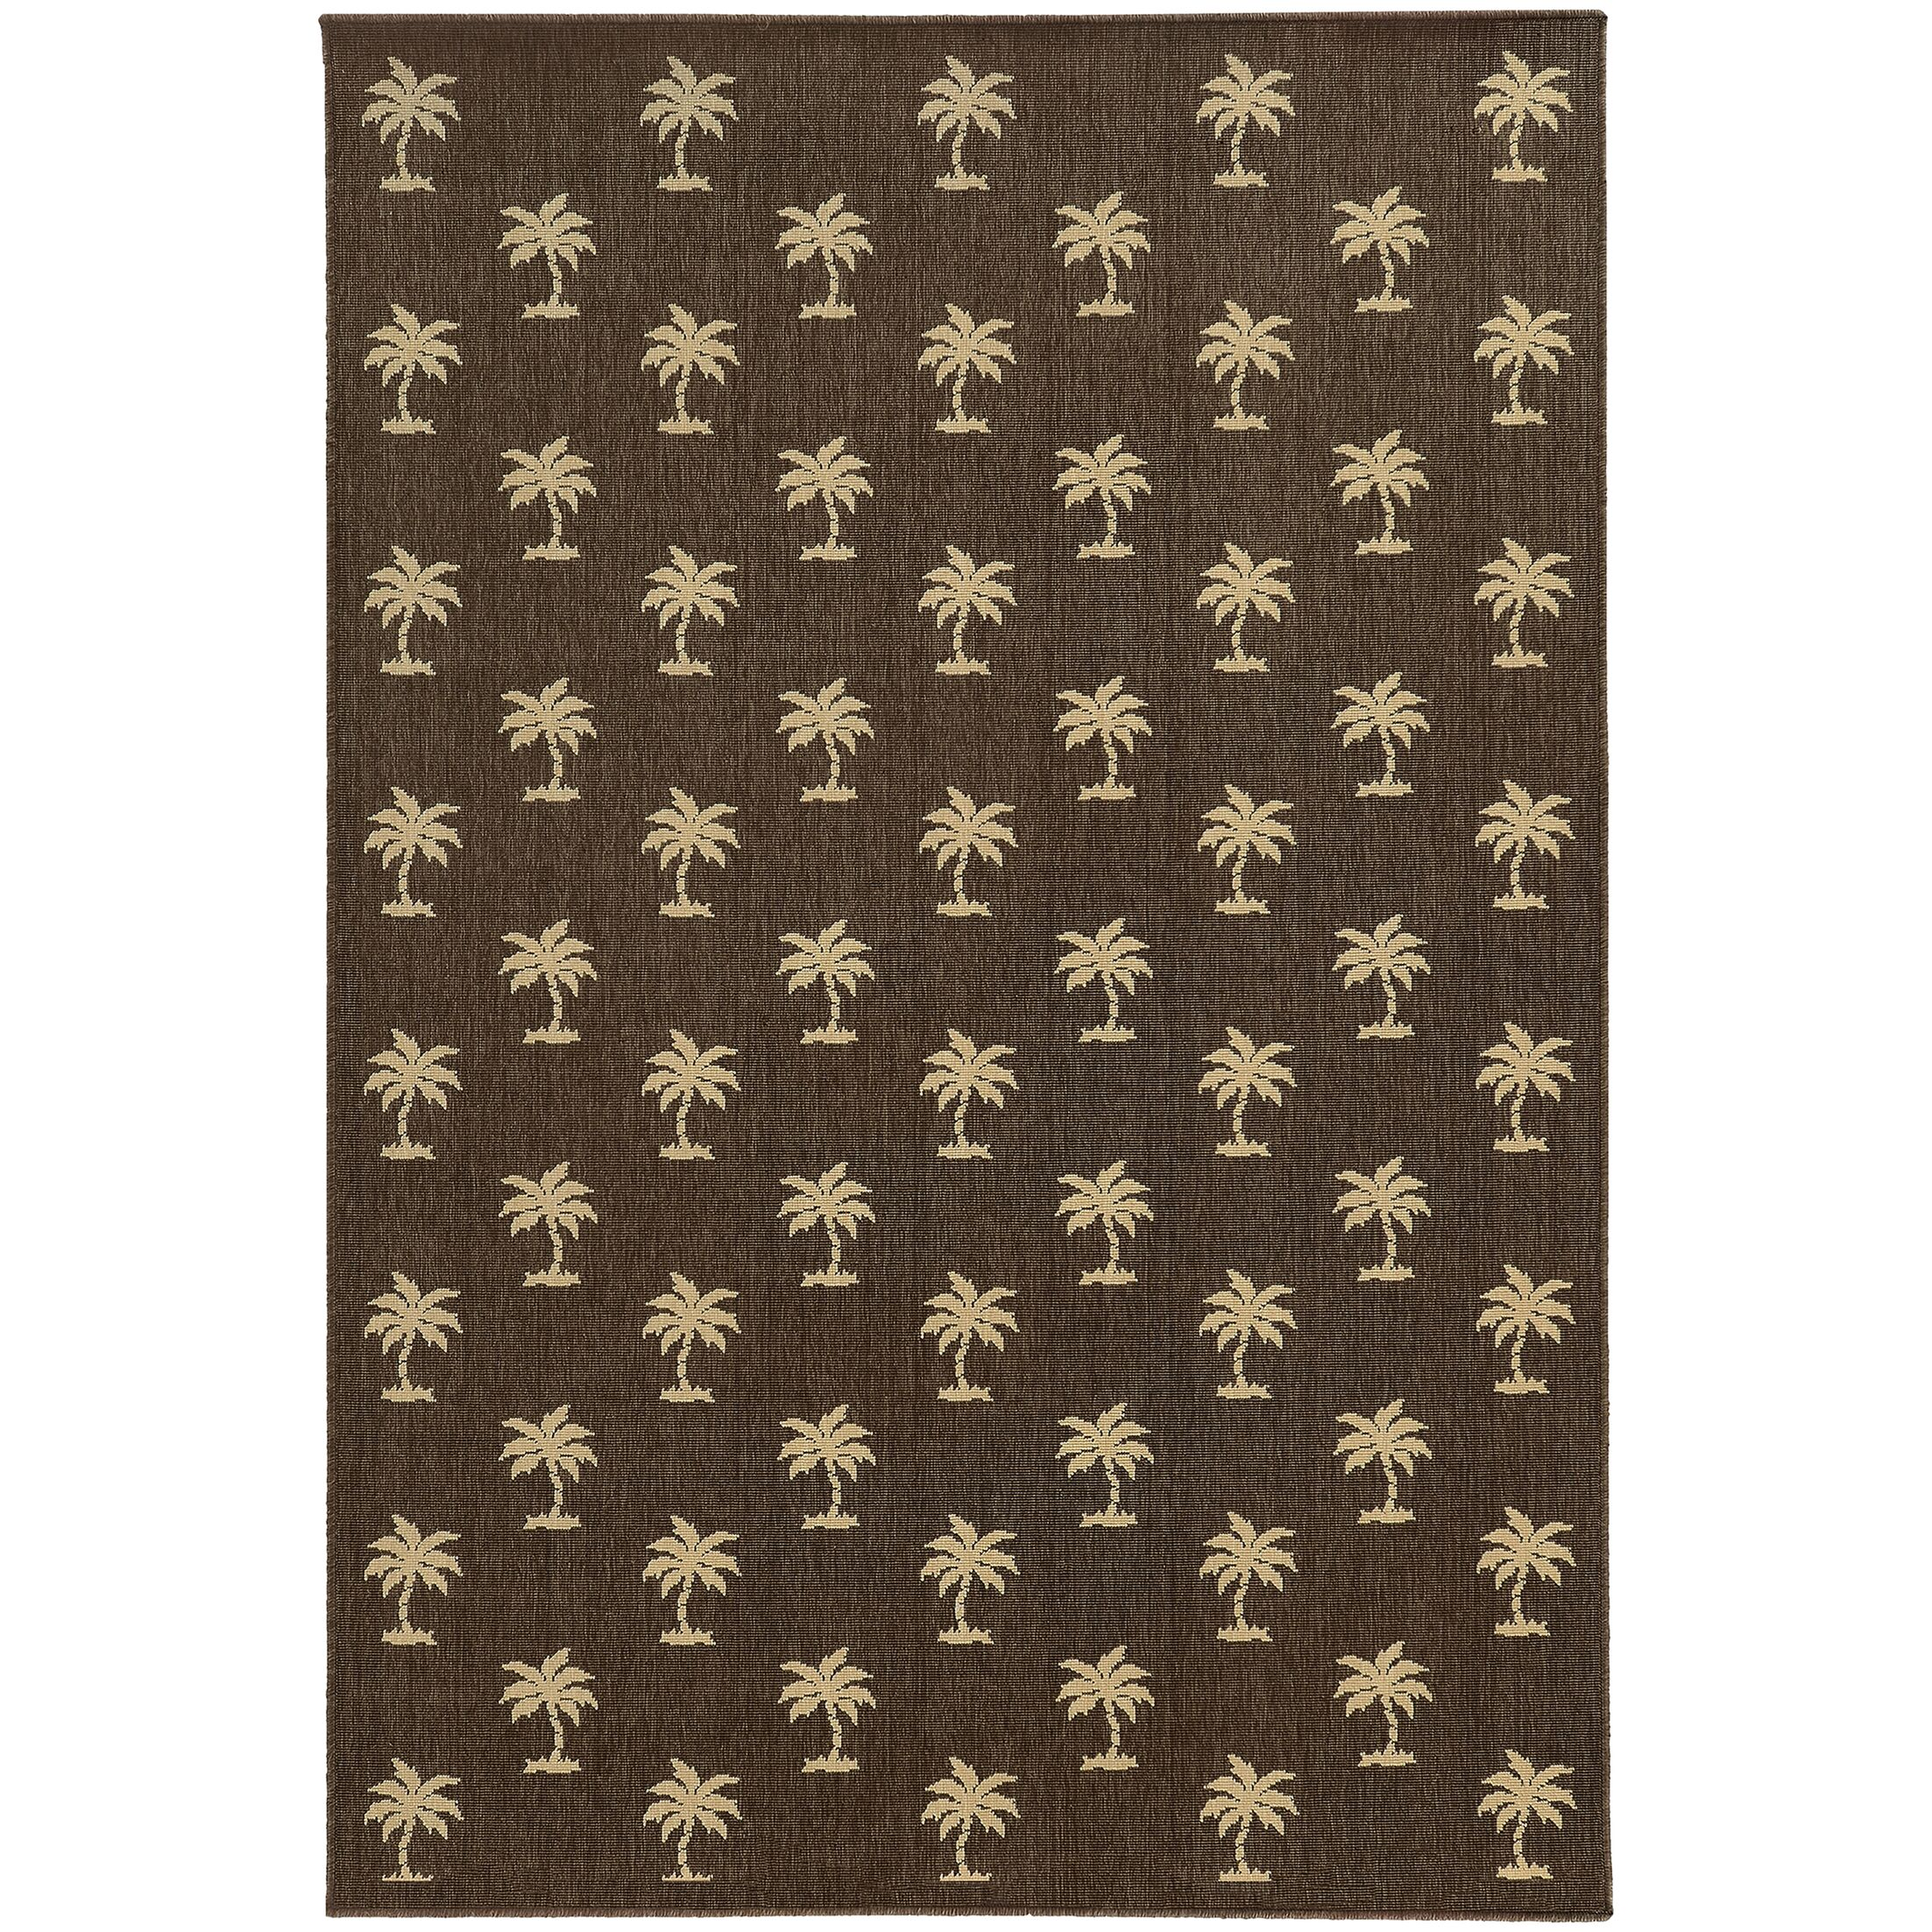 Seaside Brown & Beige Area Rug Rug Size: Rectangle 6'7